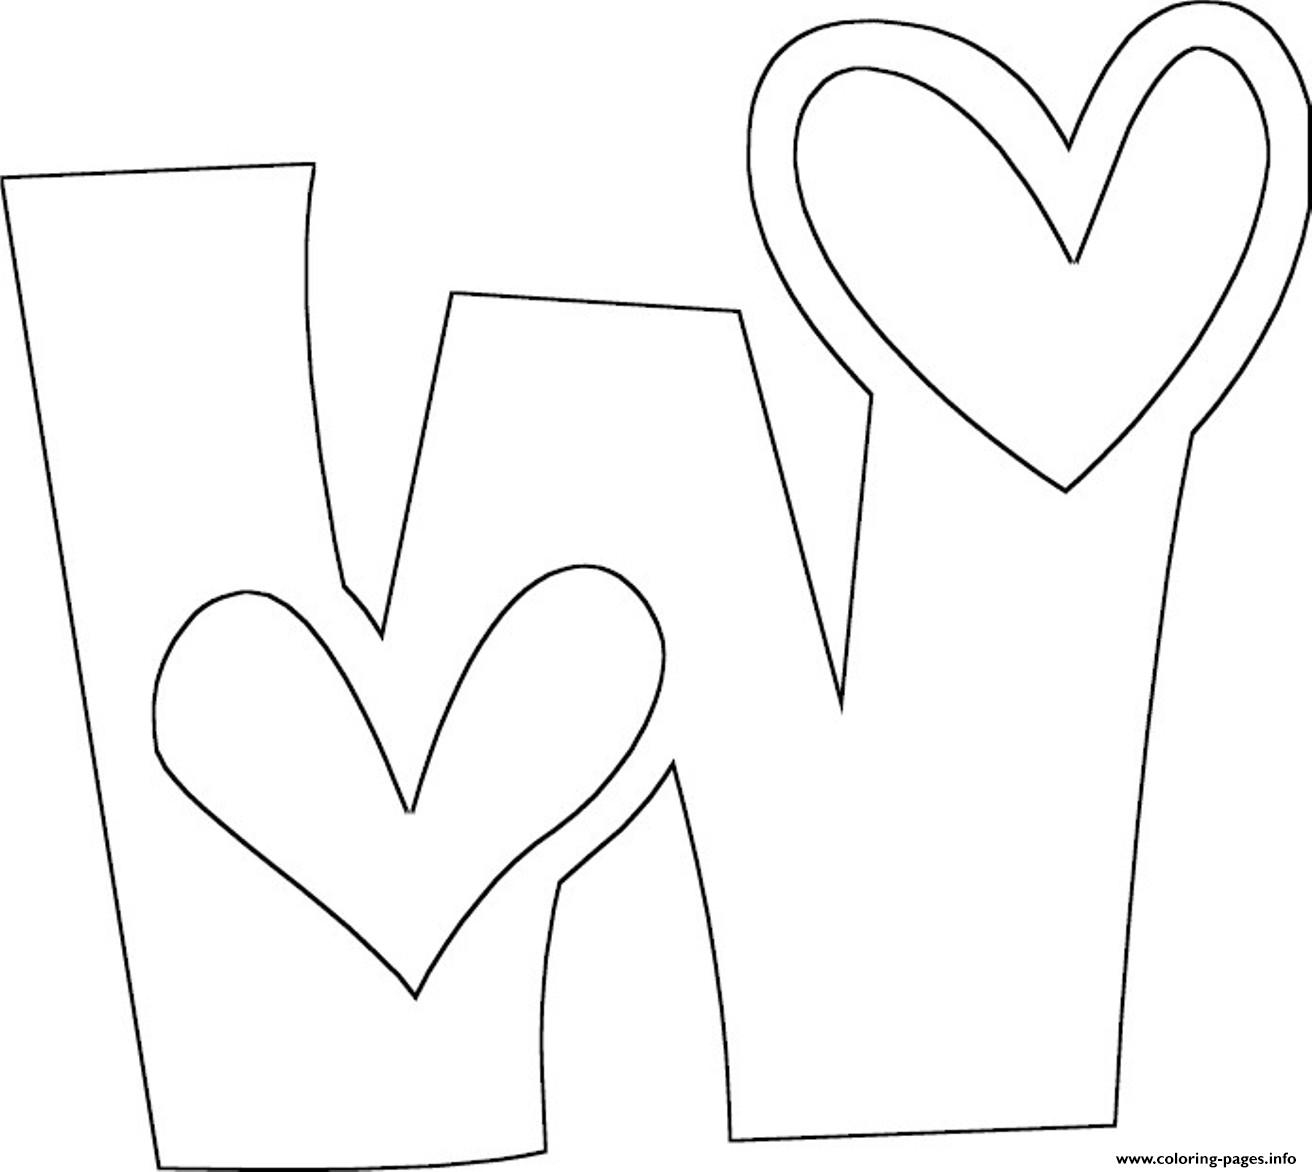 letter w coloring pages - love w free alphabet s6f30 printable coloring pages book 4728